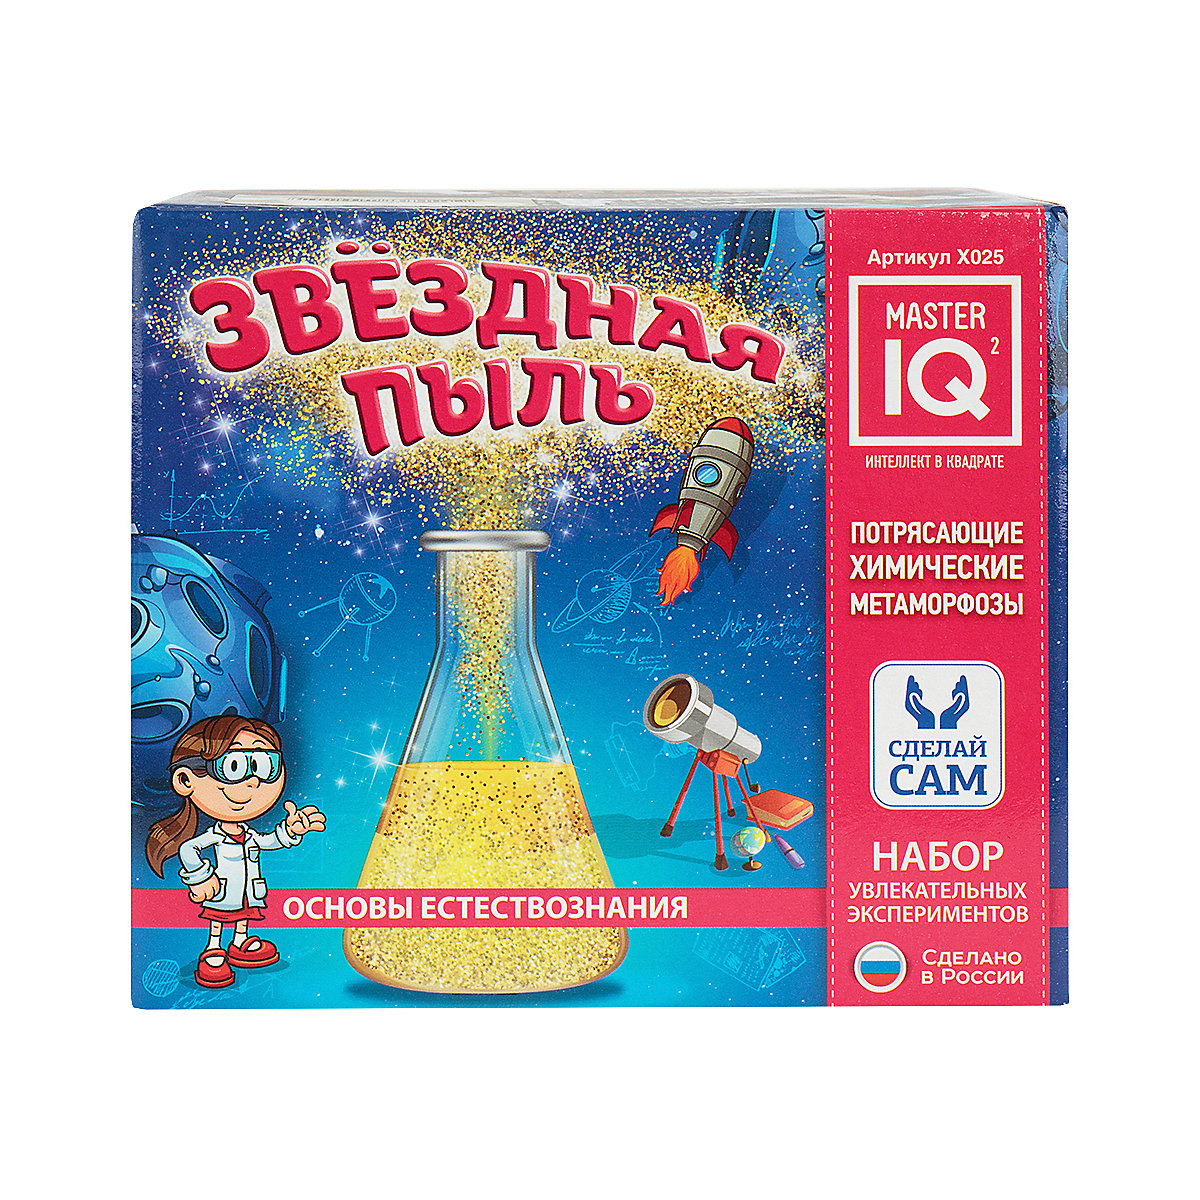 MASTER IQ2 Science 9613868 s experiments for children  technology toy play game girl boy master iq2 бурлящая лава